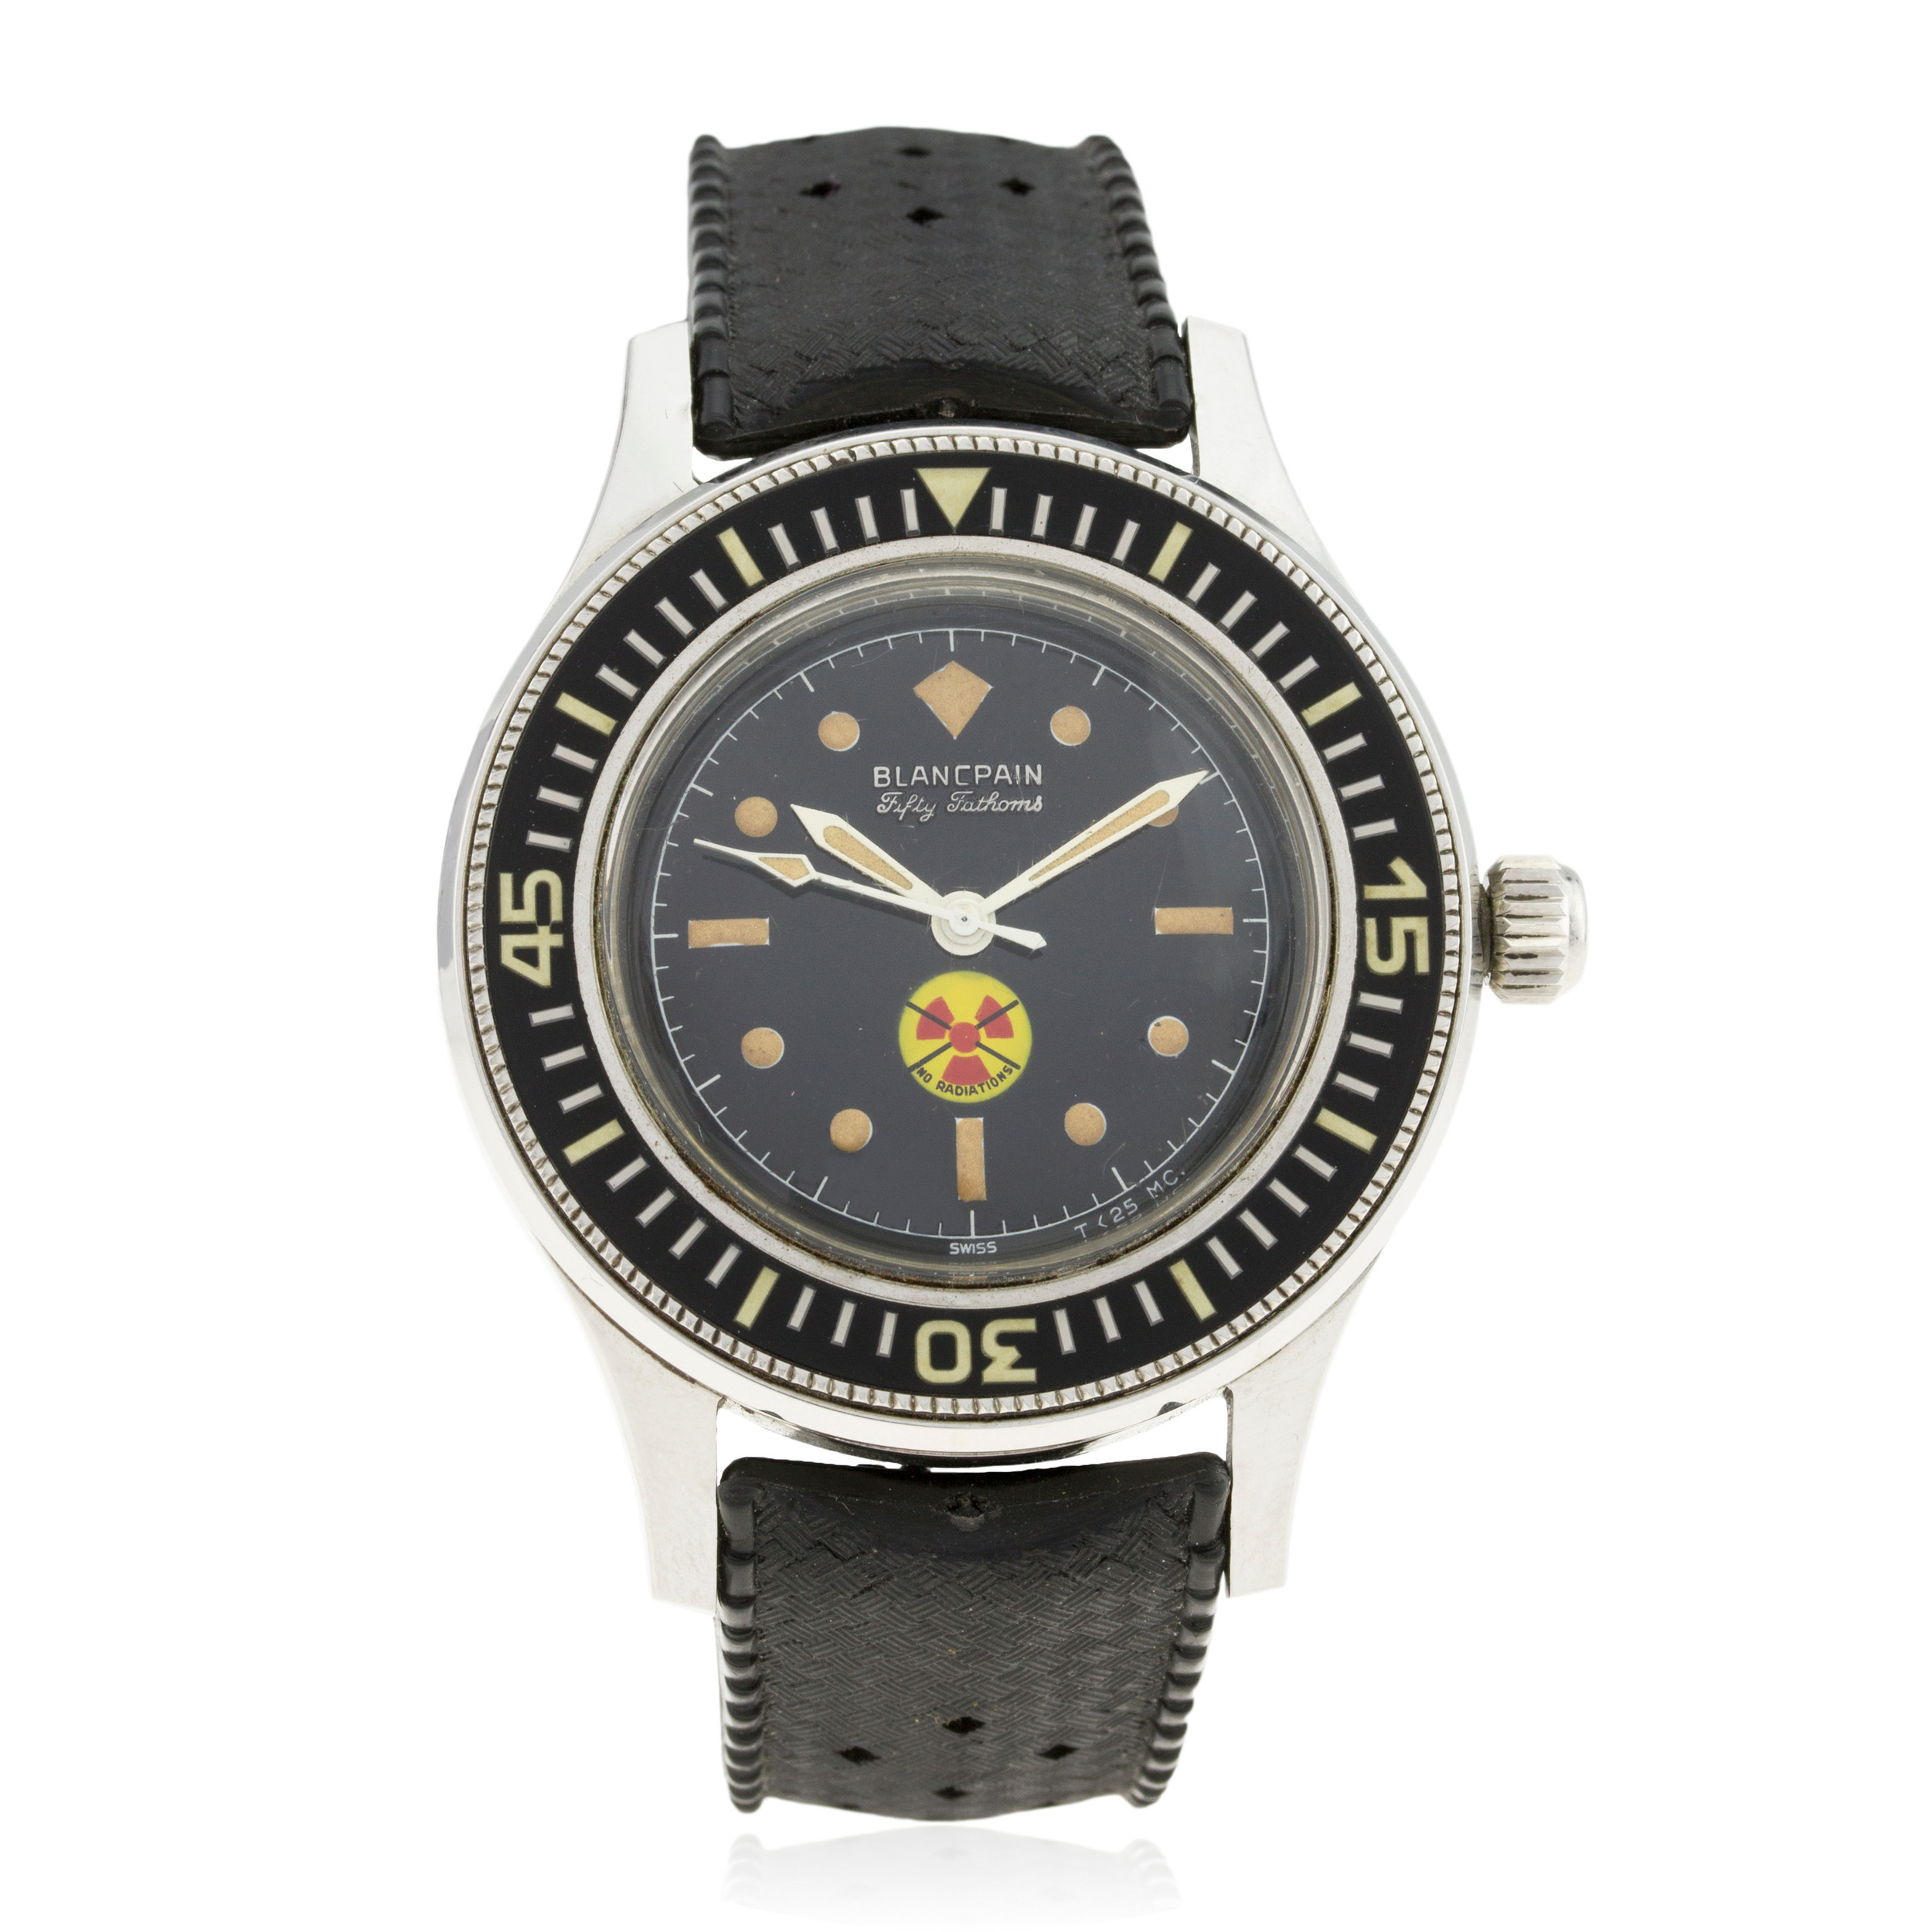 Lot 7- Blancpain Fifty Fathoms - SOLD 12,000GBP